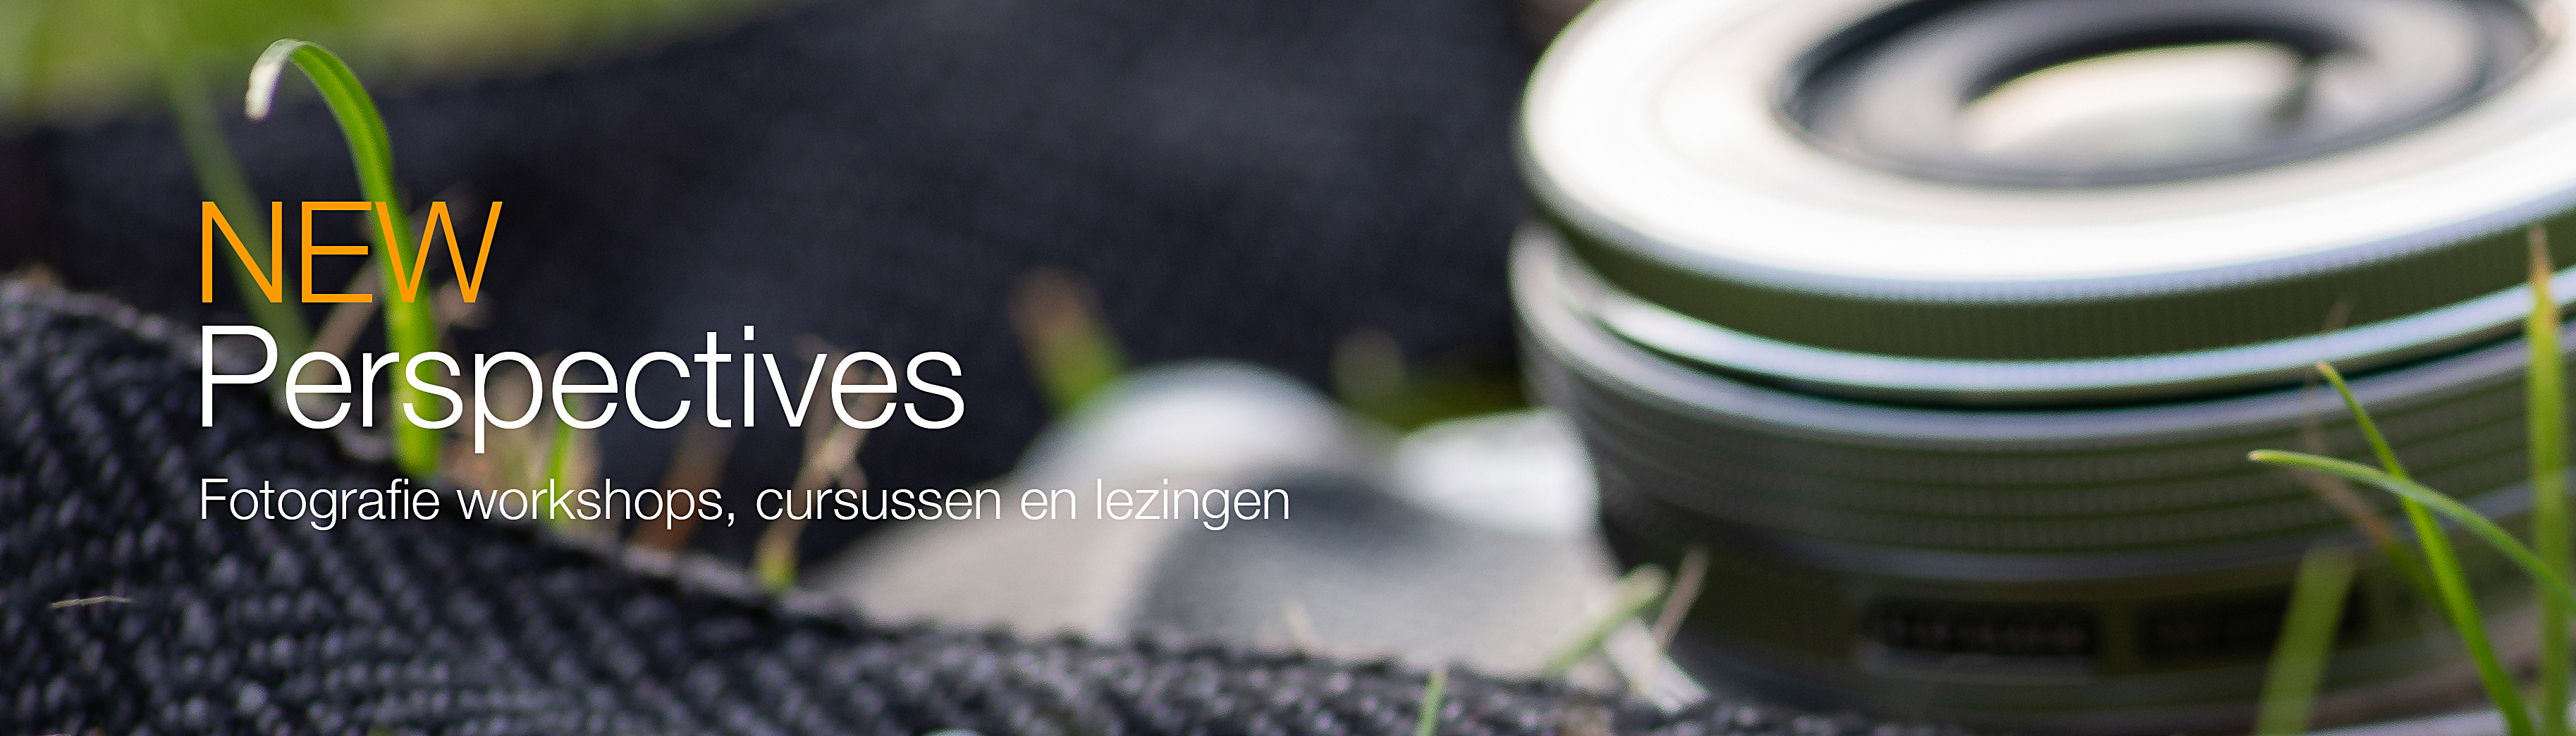 NEW Perspectives | Fotografie Workshops